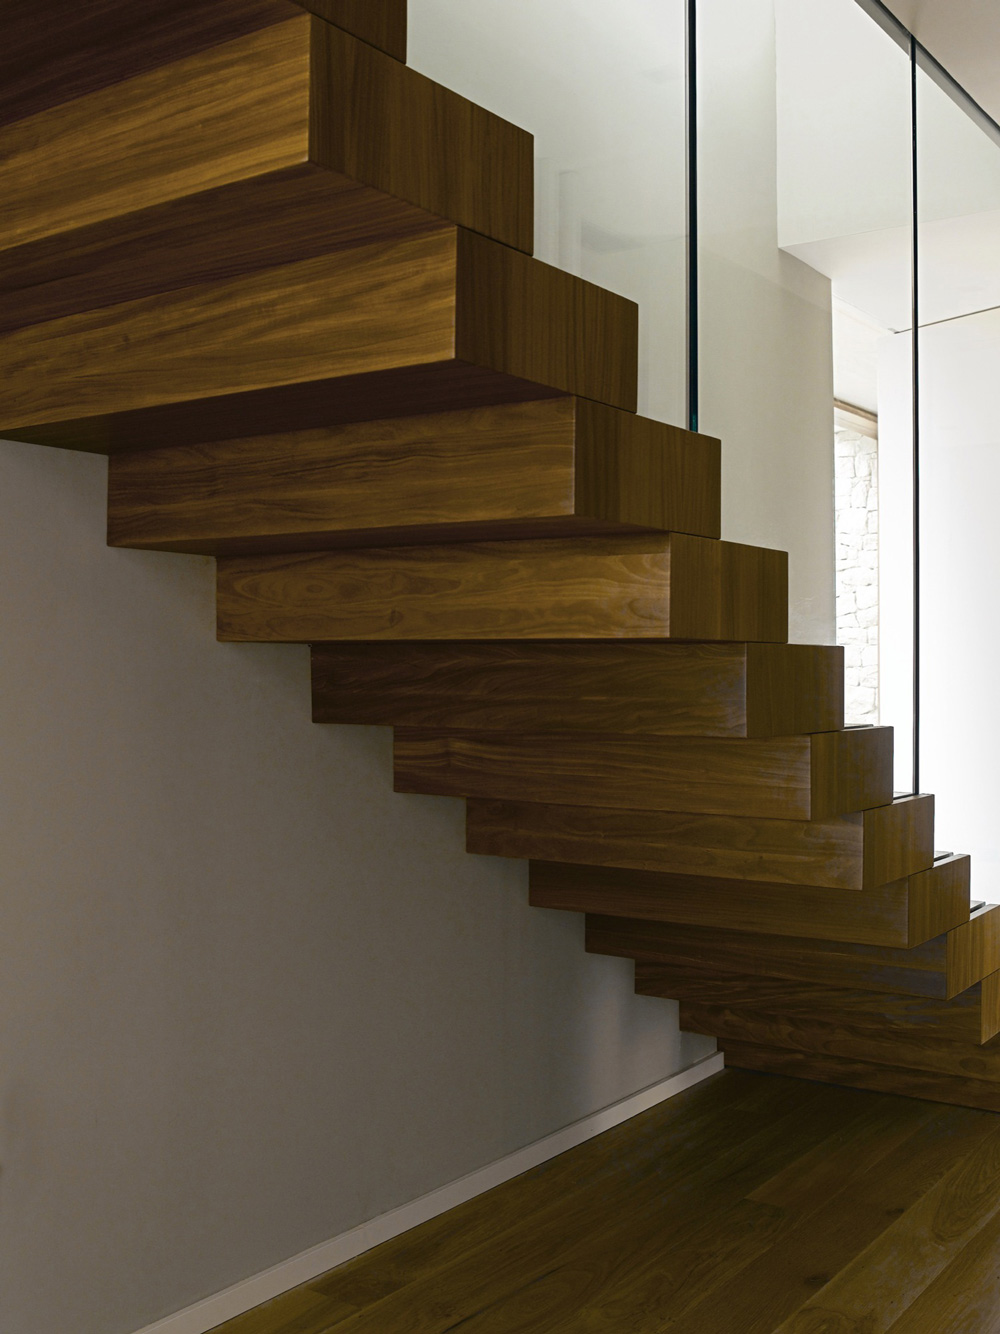 Wood & Glass Stairs, Contemporary Home in Monasterios, Spain